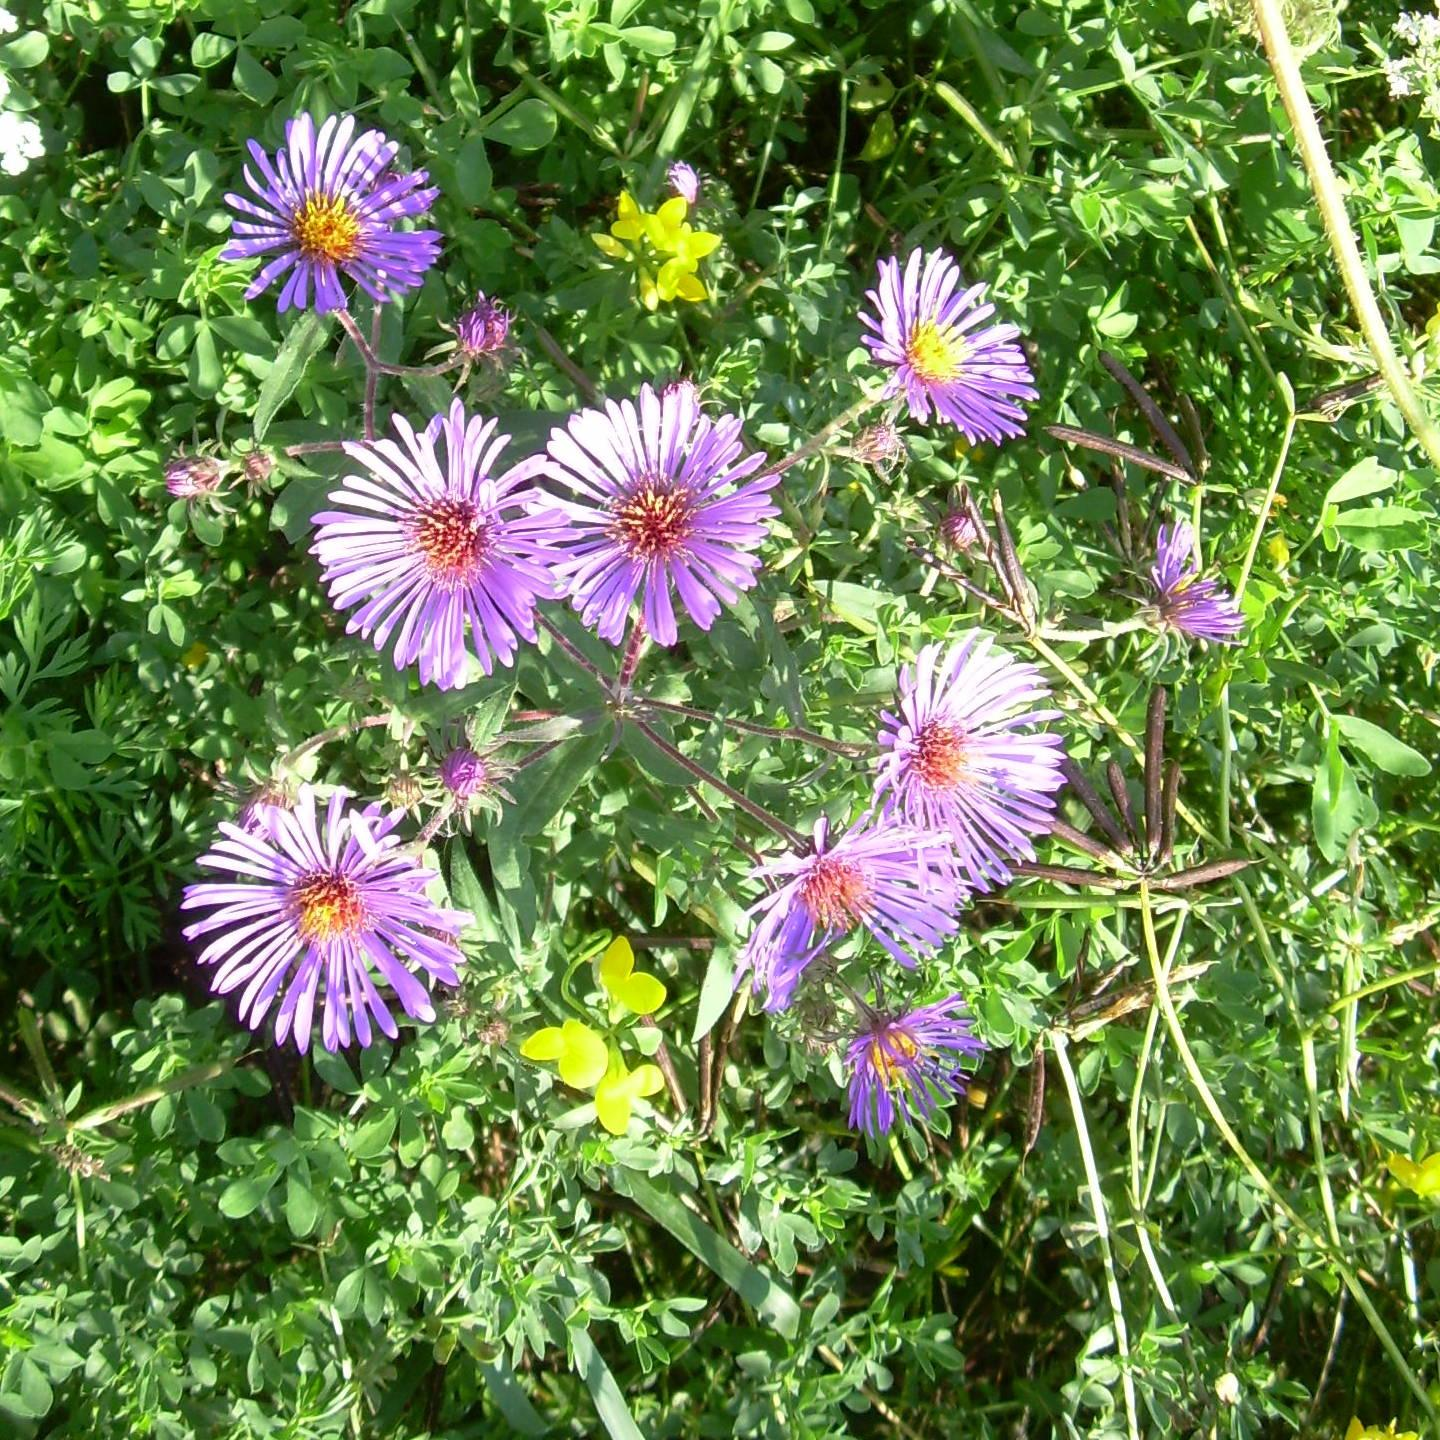 New-England Aster